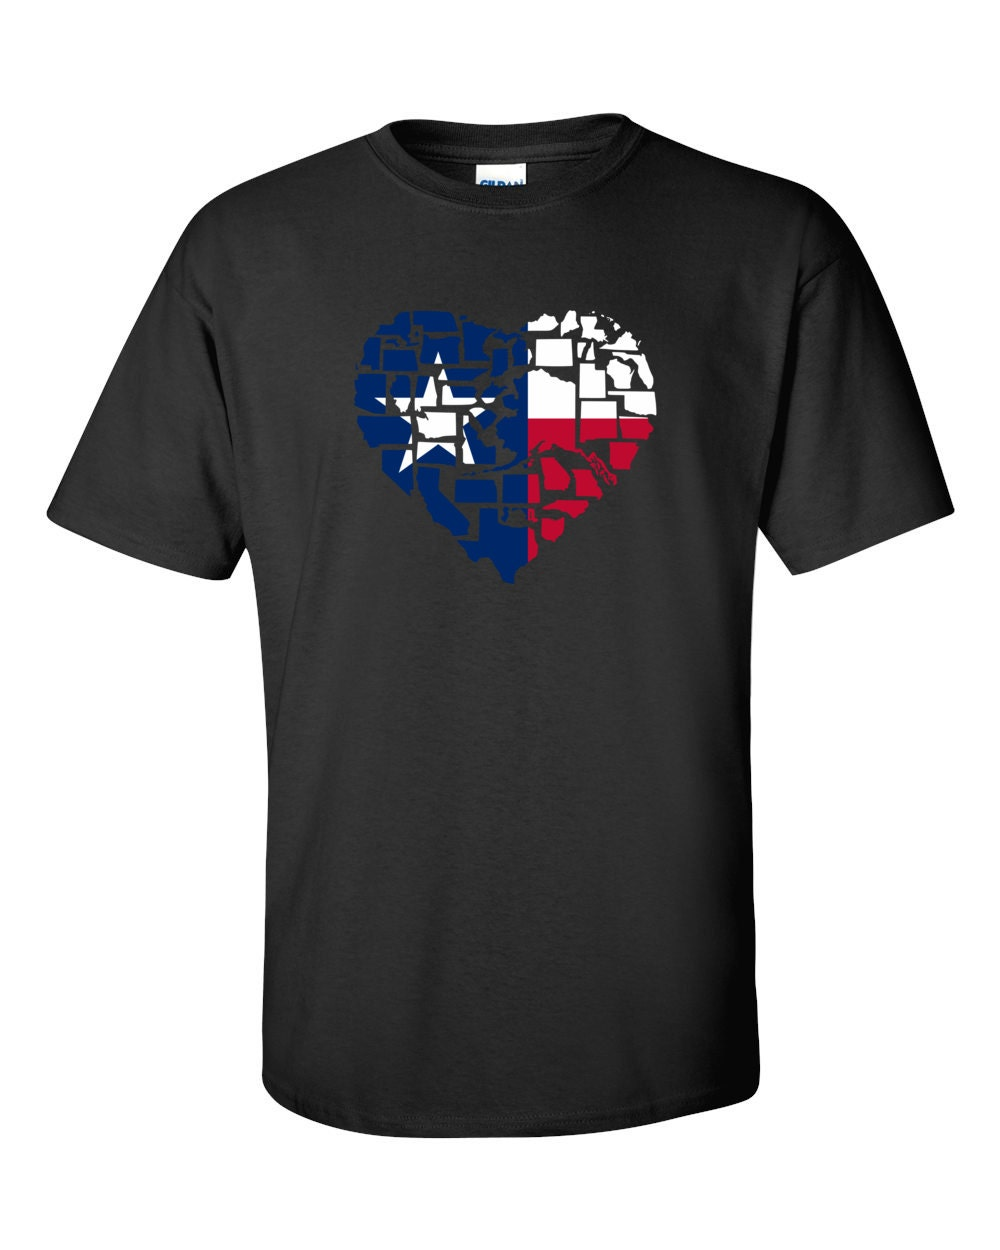 Texas T-shirt - No Matter Where I Am, Texas Is Alway In My Heart - My State Texas T-shirt